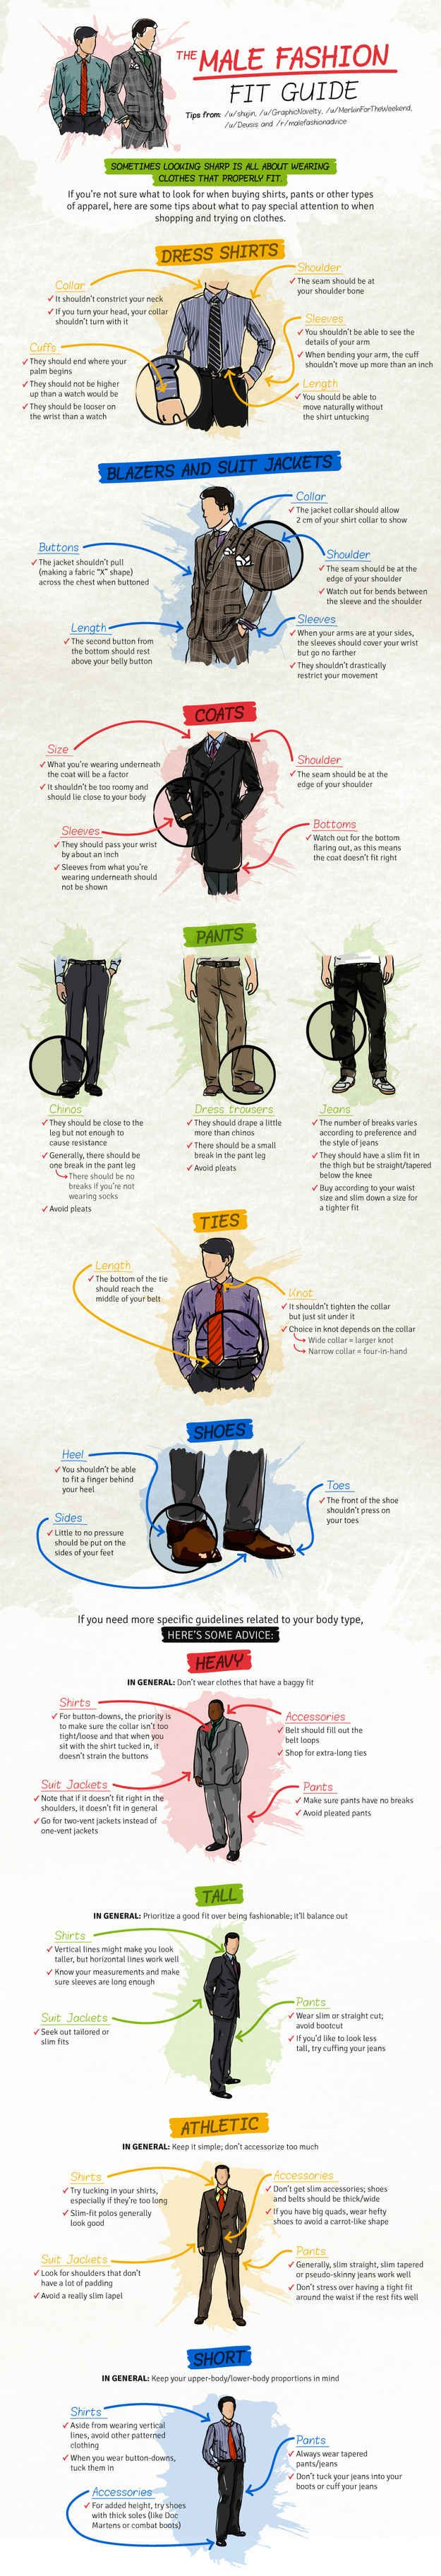 Men's Fashion: Everything You Need To Know About Men's Fashion In One Infographic #guide #tips #fashion #menswear #info